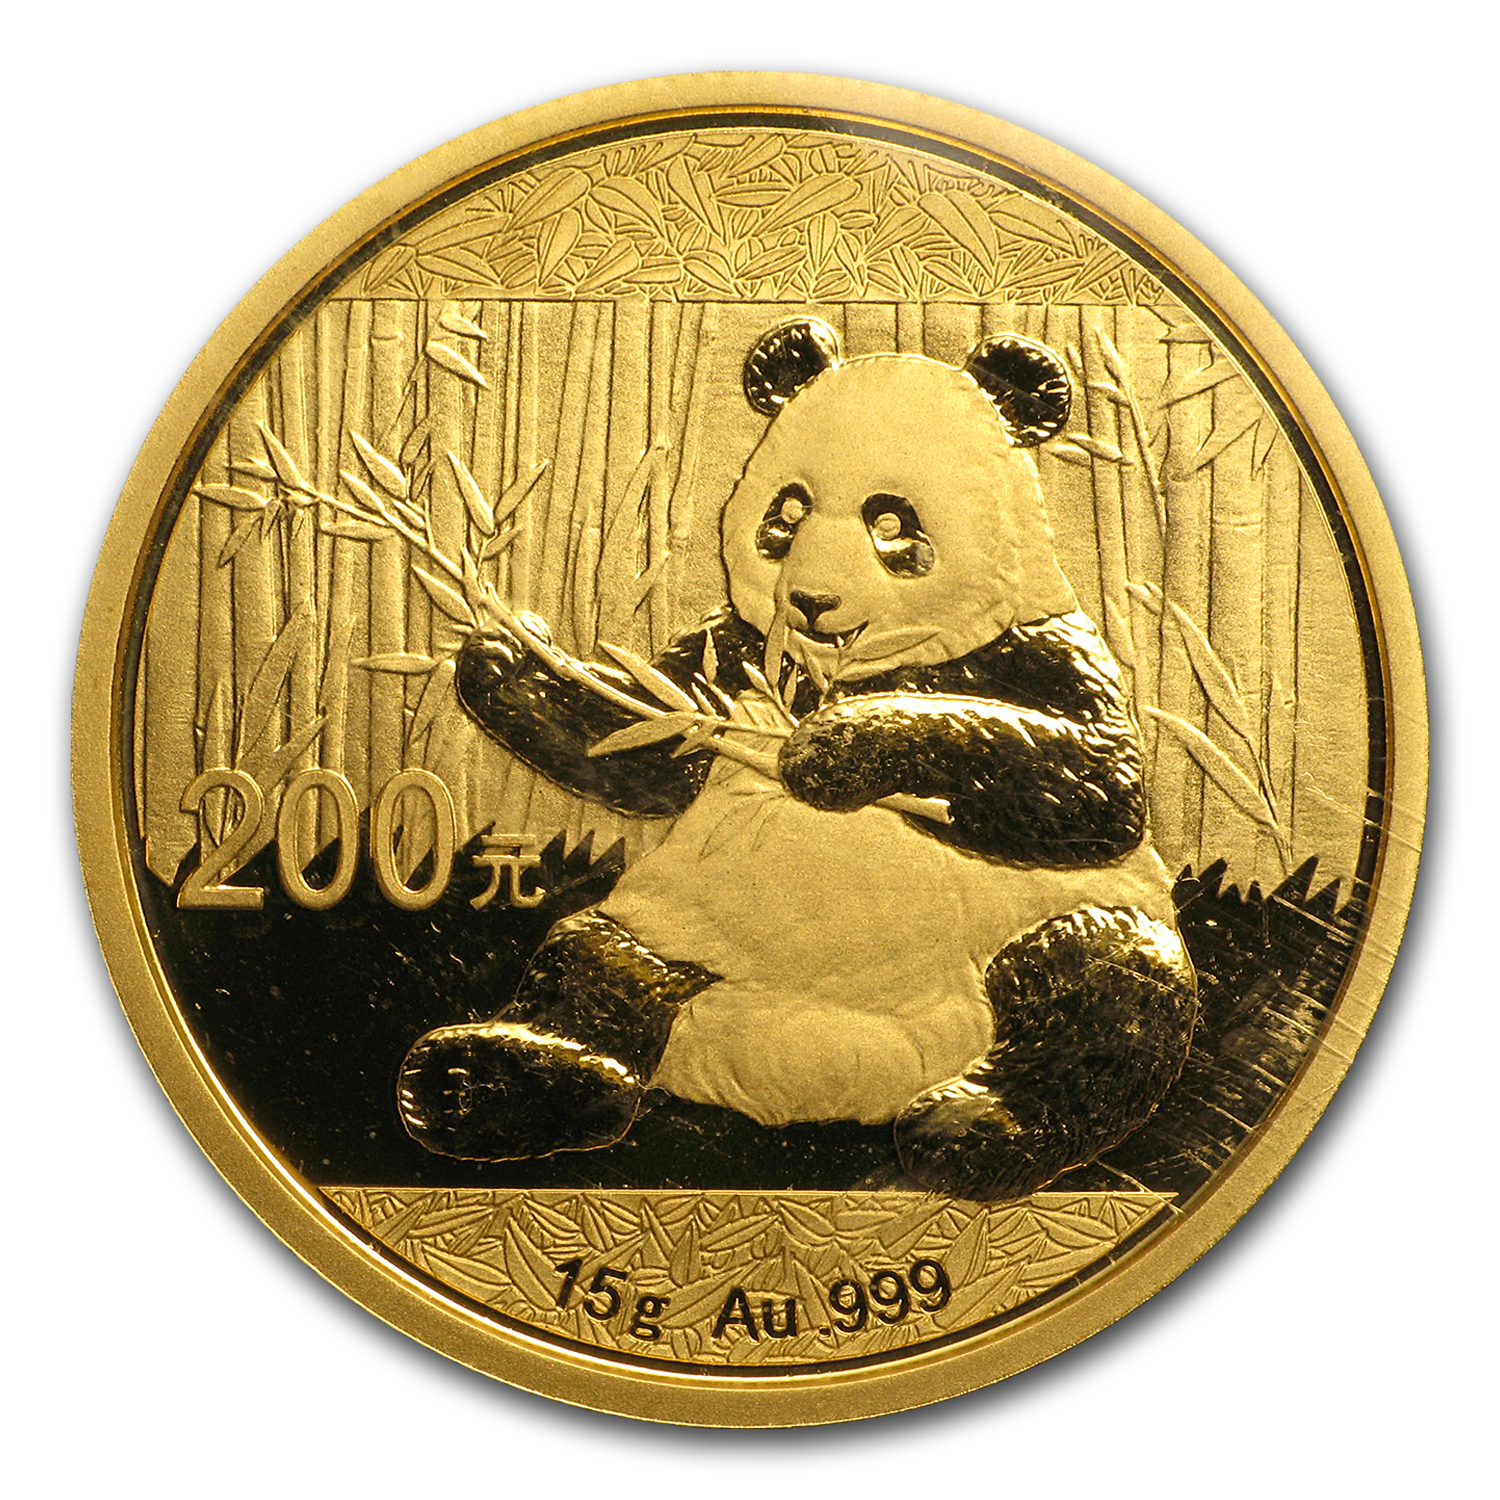 2017 China 15 gram Gold Panda BU (Sealed)